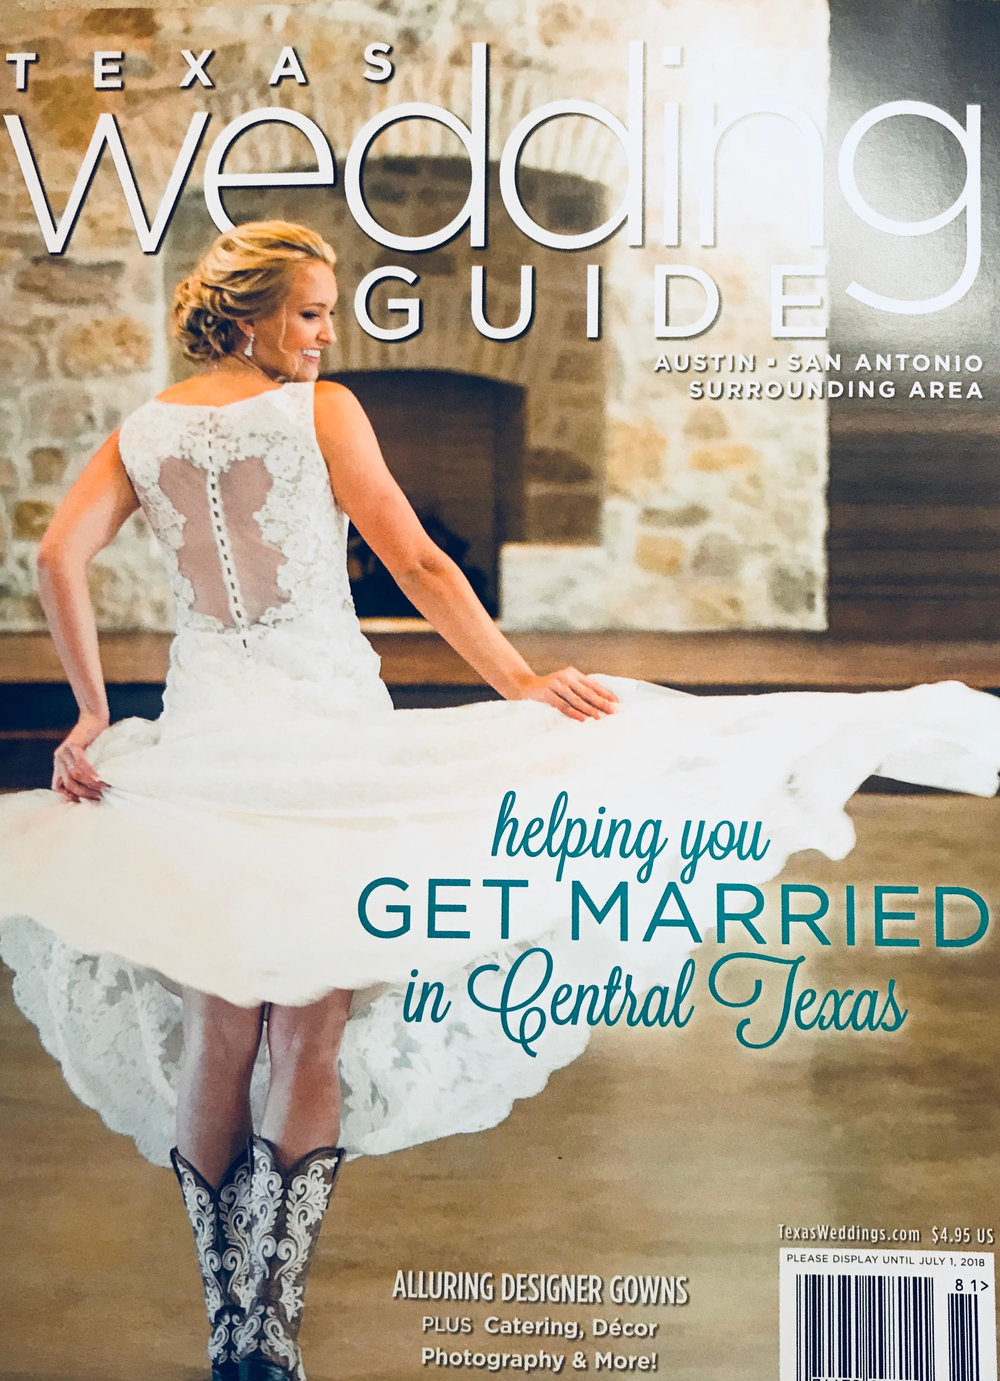 Texas Wedding Guide - PSR - LUXURY CAKES & DESIGNED DESSERTS